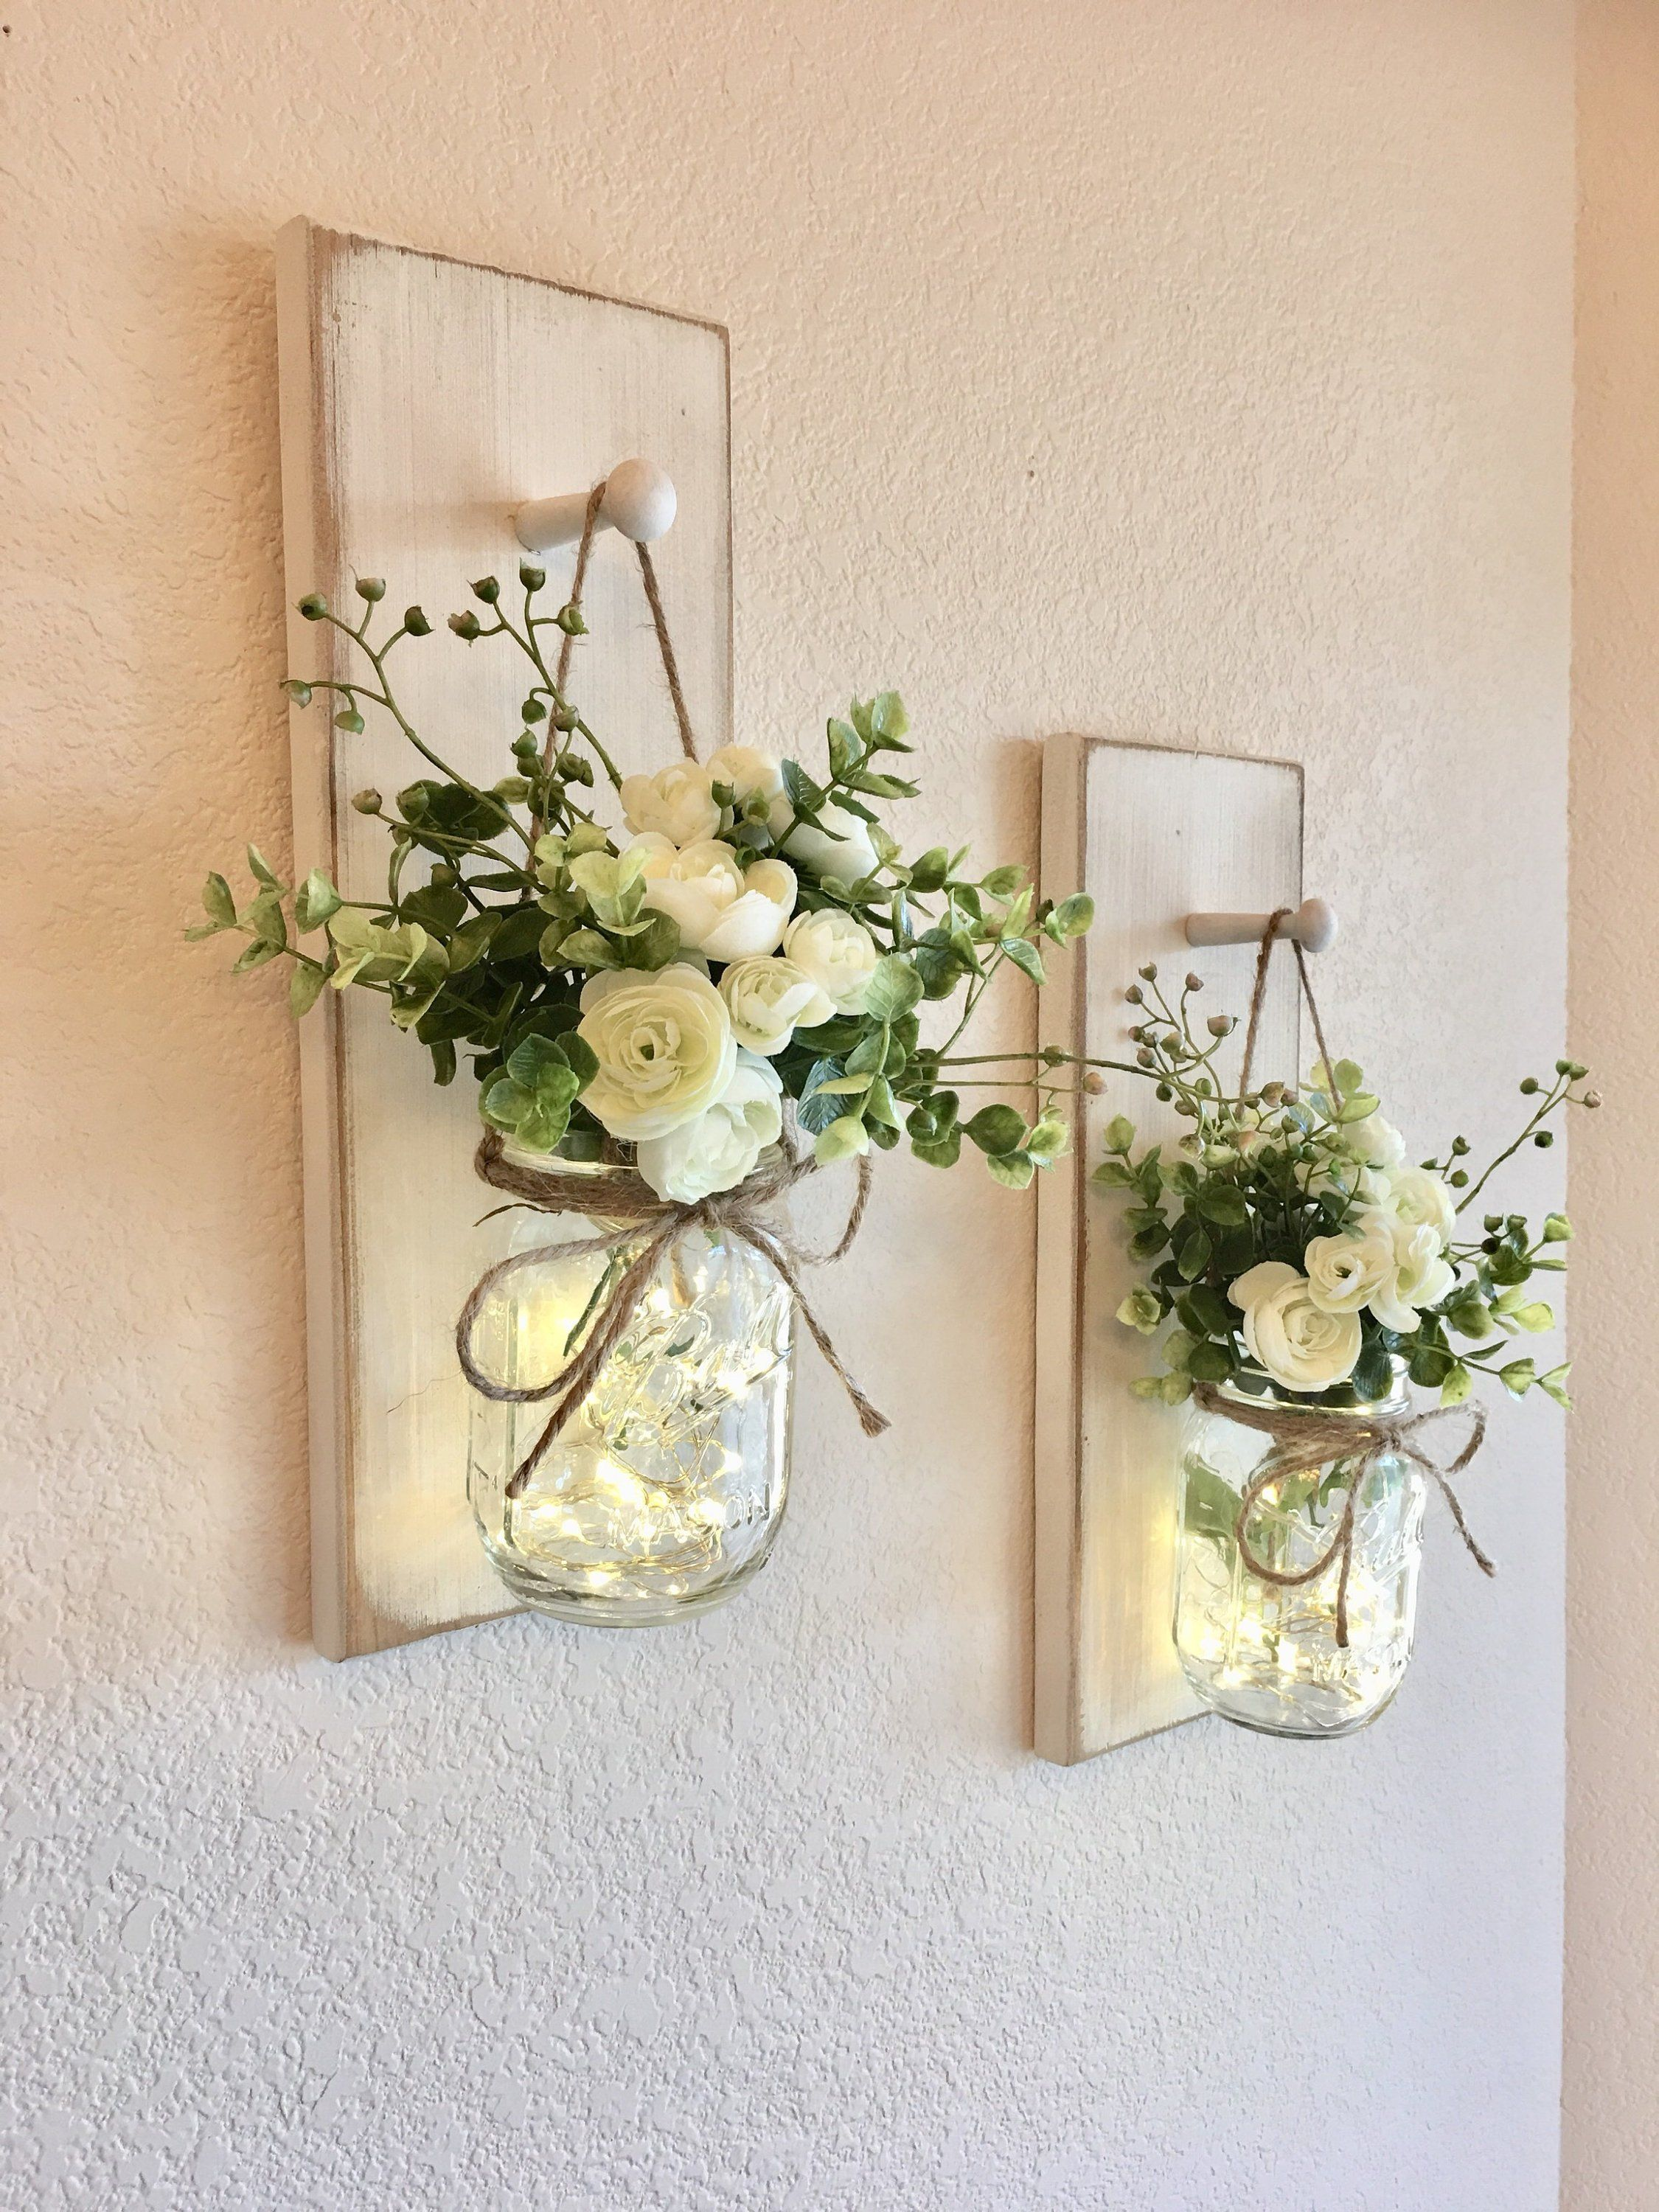 Photo of Home Decor, Mason Jar Sconces, Mason Jar Decor, Farmhouse Wall Decor, Rustic Wall Decor, Home Decor, Farmhouse Living Room Decor, Sconce